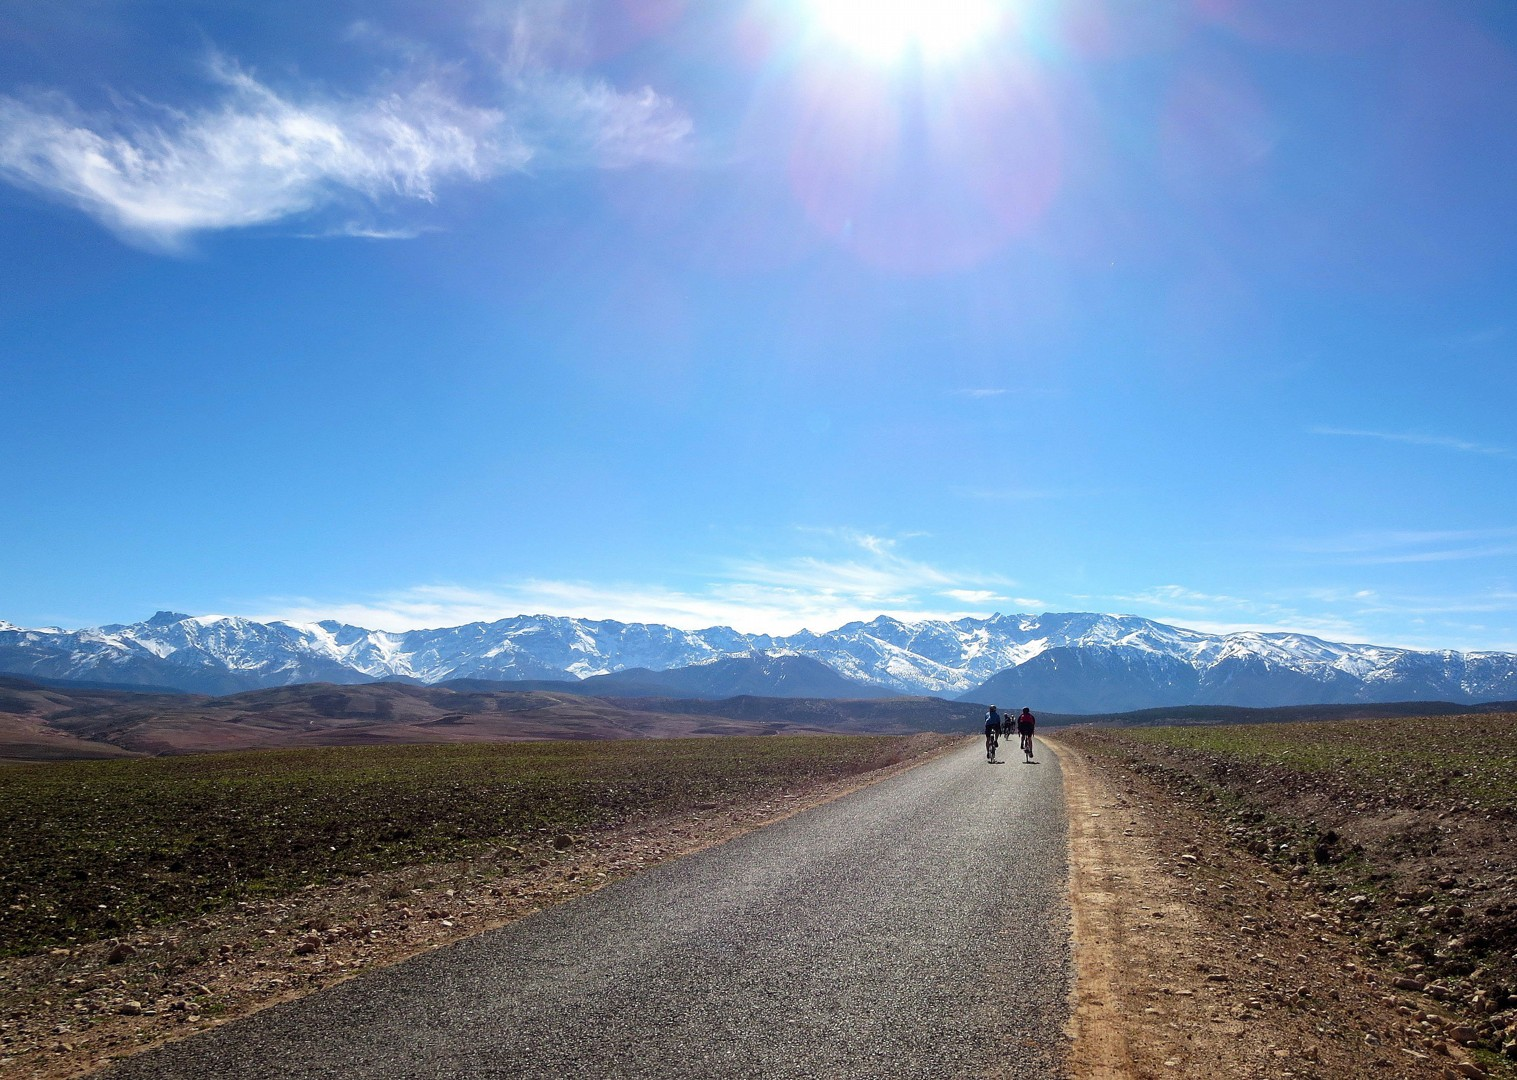 douar-samra-road-cycling-holiday-in-morocco-atlas-mountains.jpg - Morocco - Road Atlas - Road Cycling